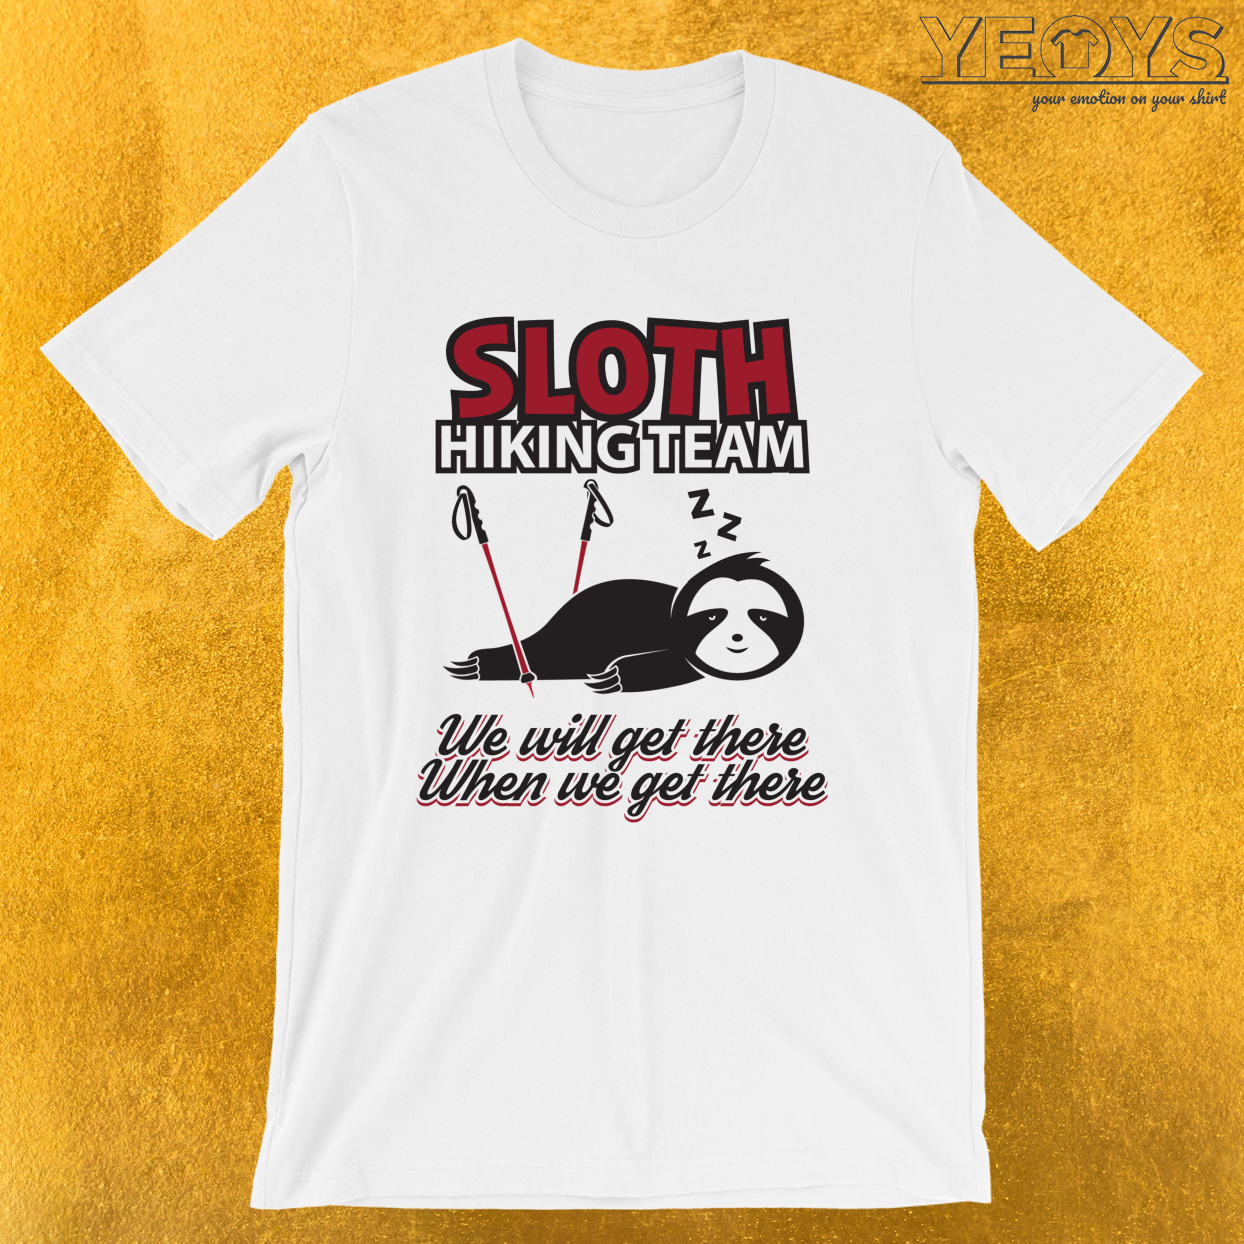 We Will Get There When We Get There – Sloth Hiking Team Tee